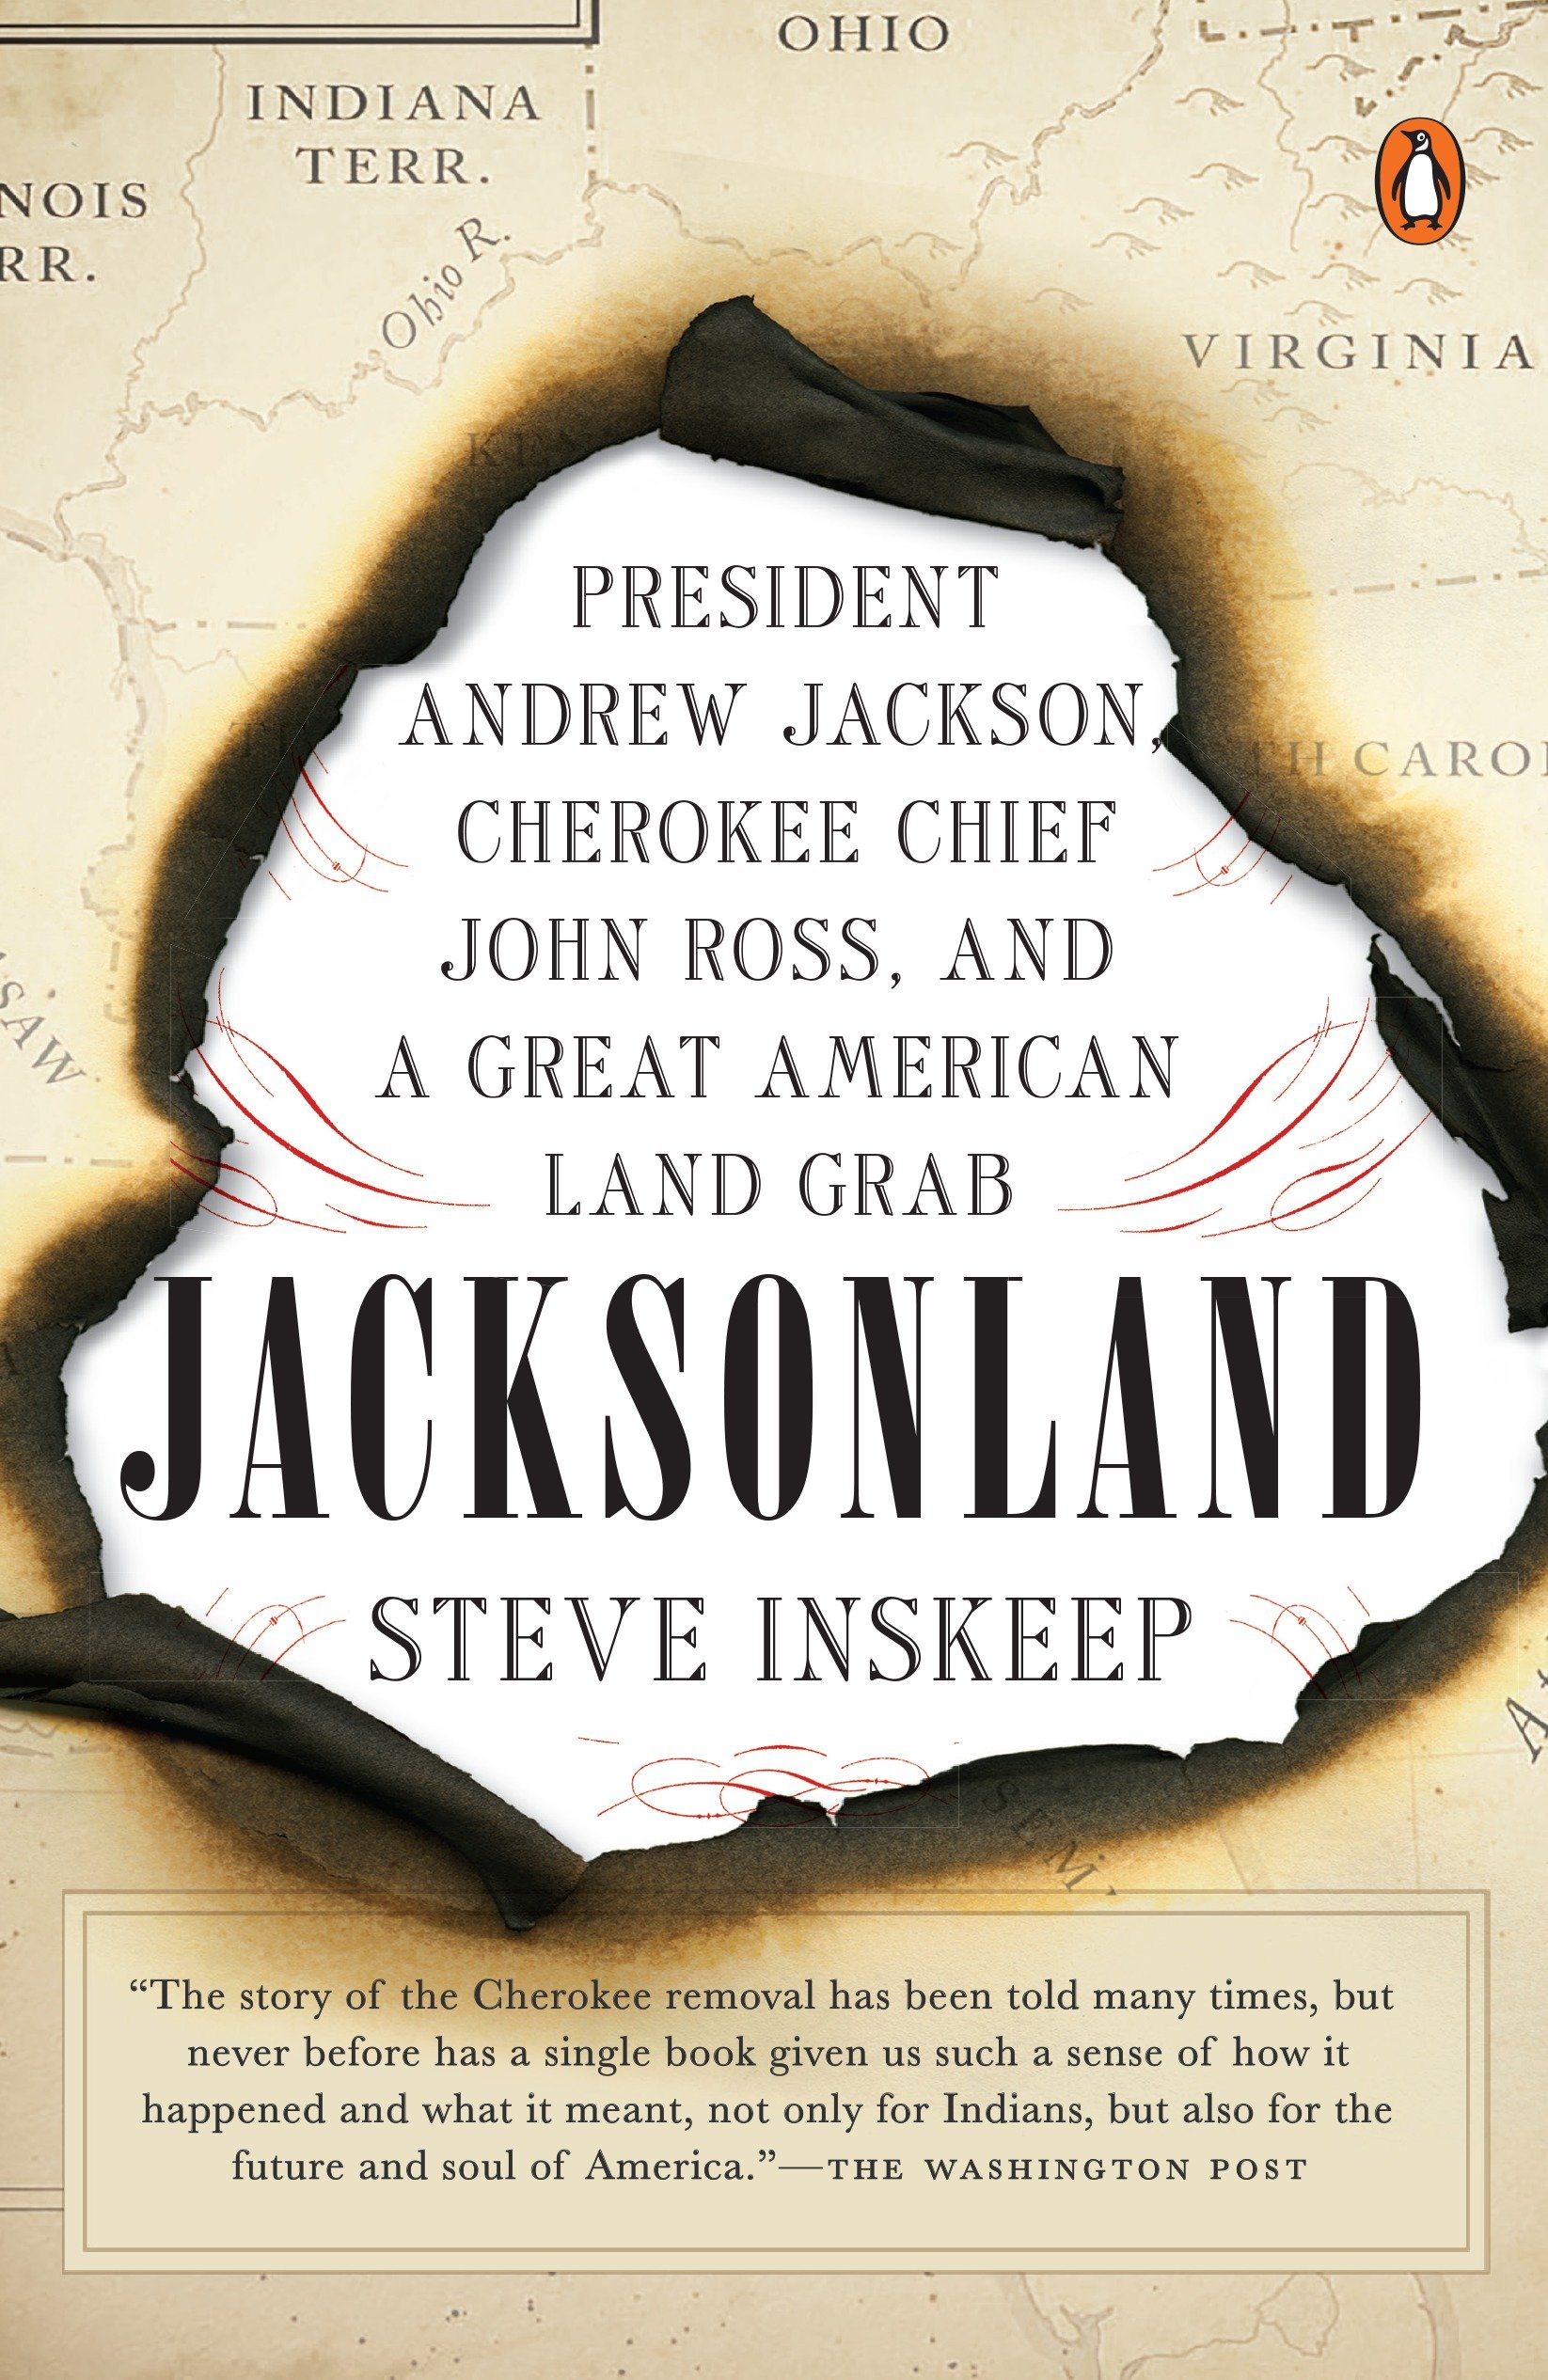 Jacksonland President Andrew Jackson, Cherokee Chief John Ross, and a Great American Land Grab